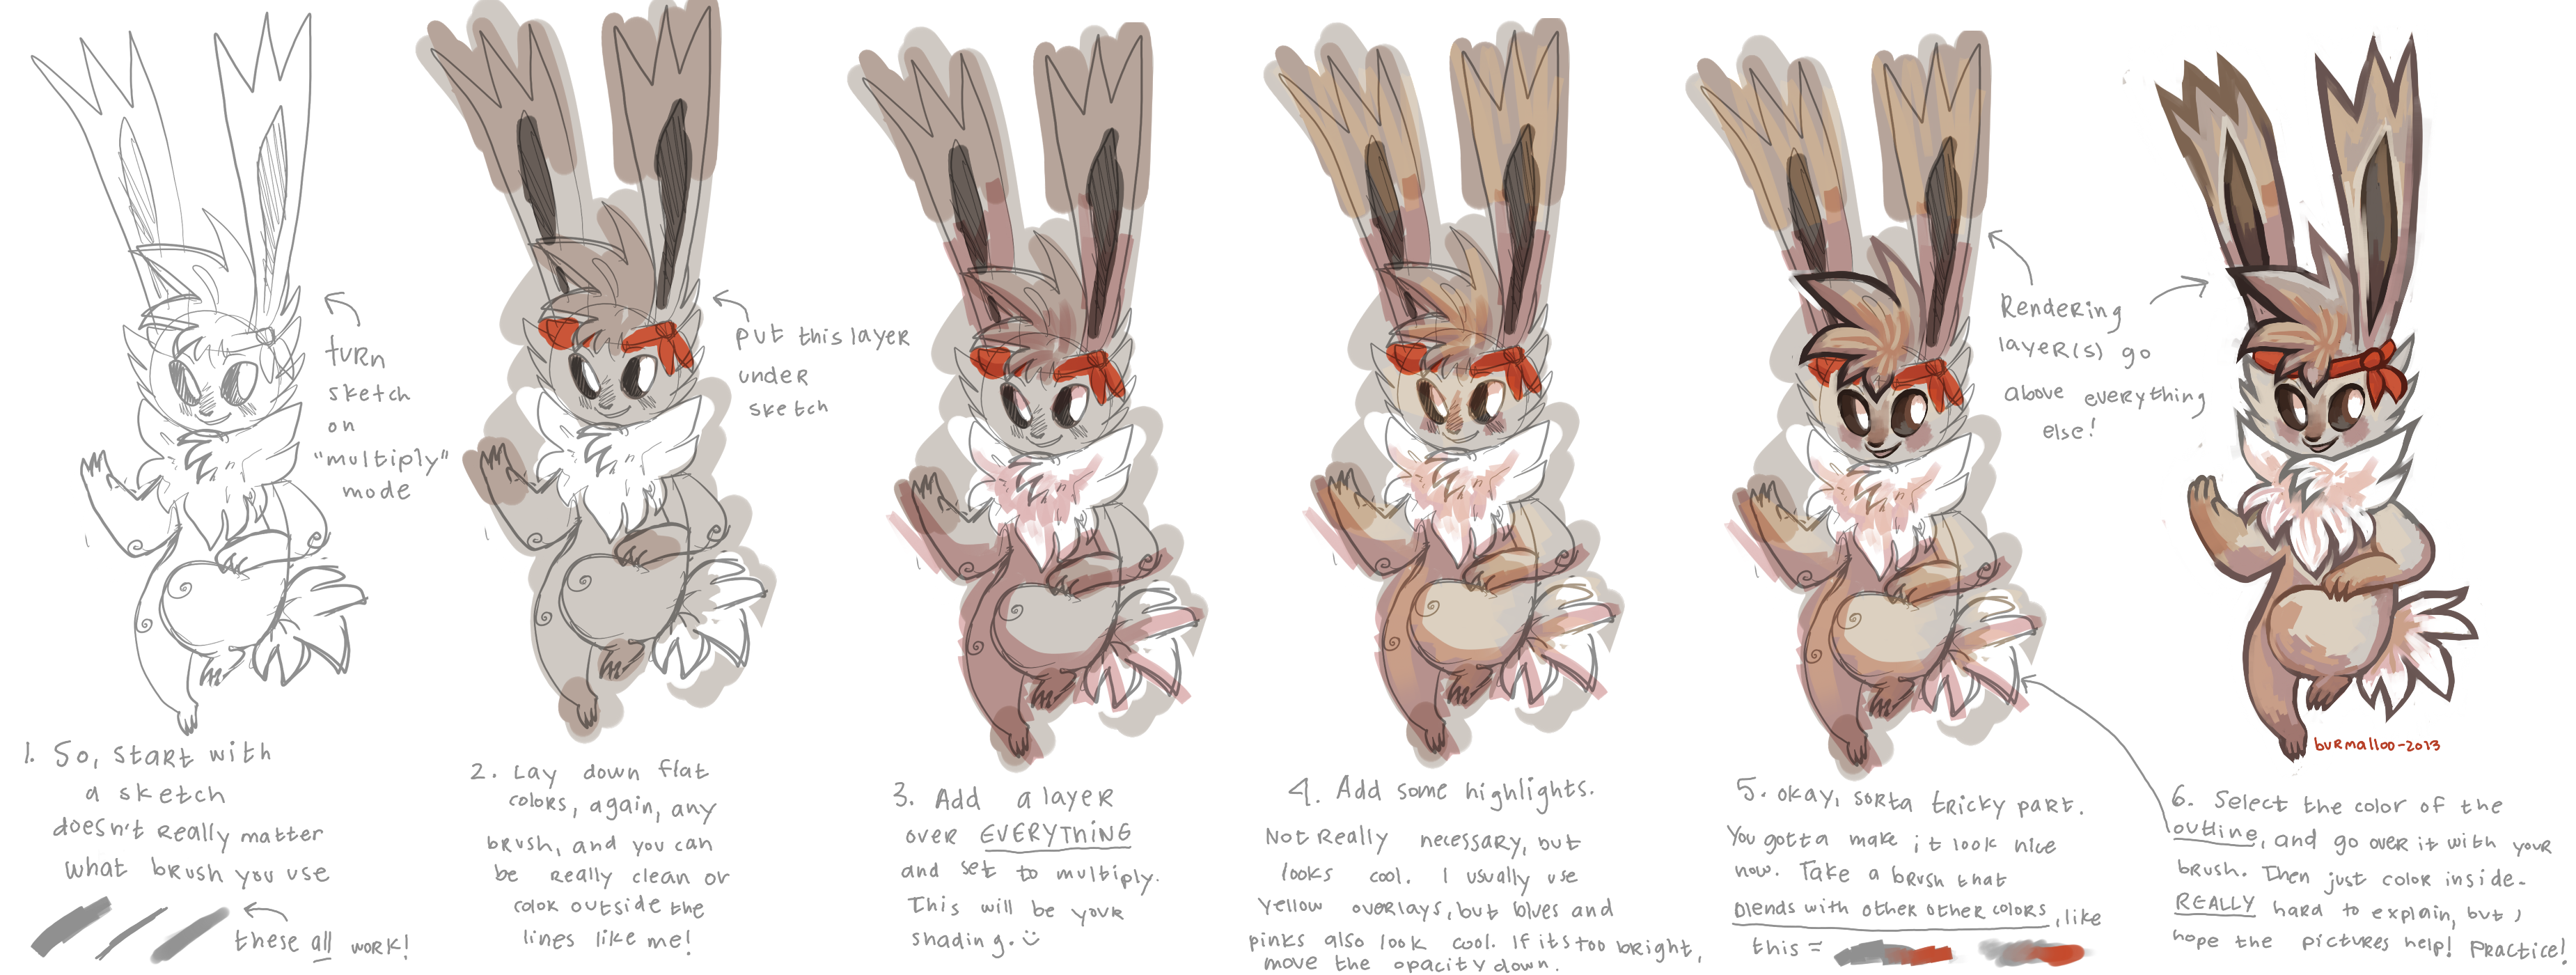 Burmii's painty tutorial by burmalloo